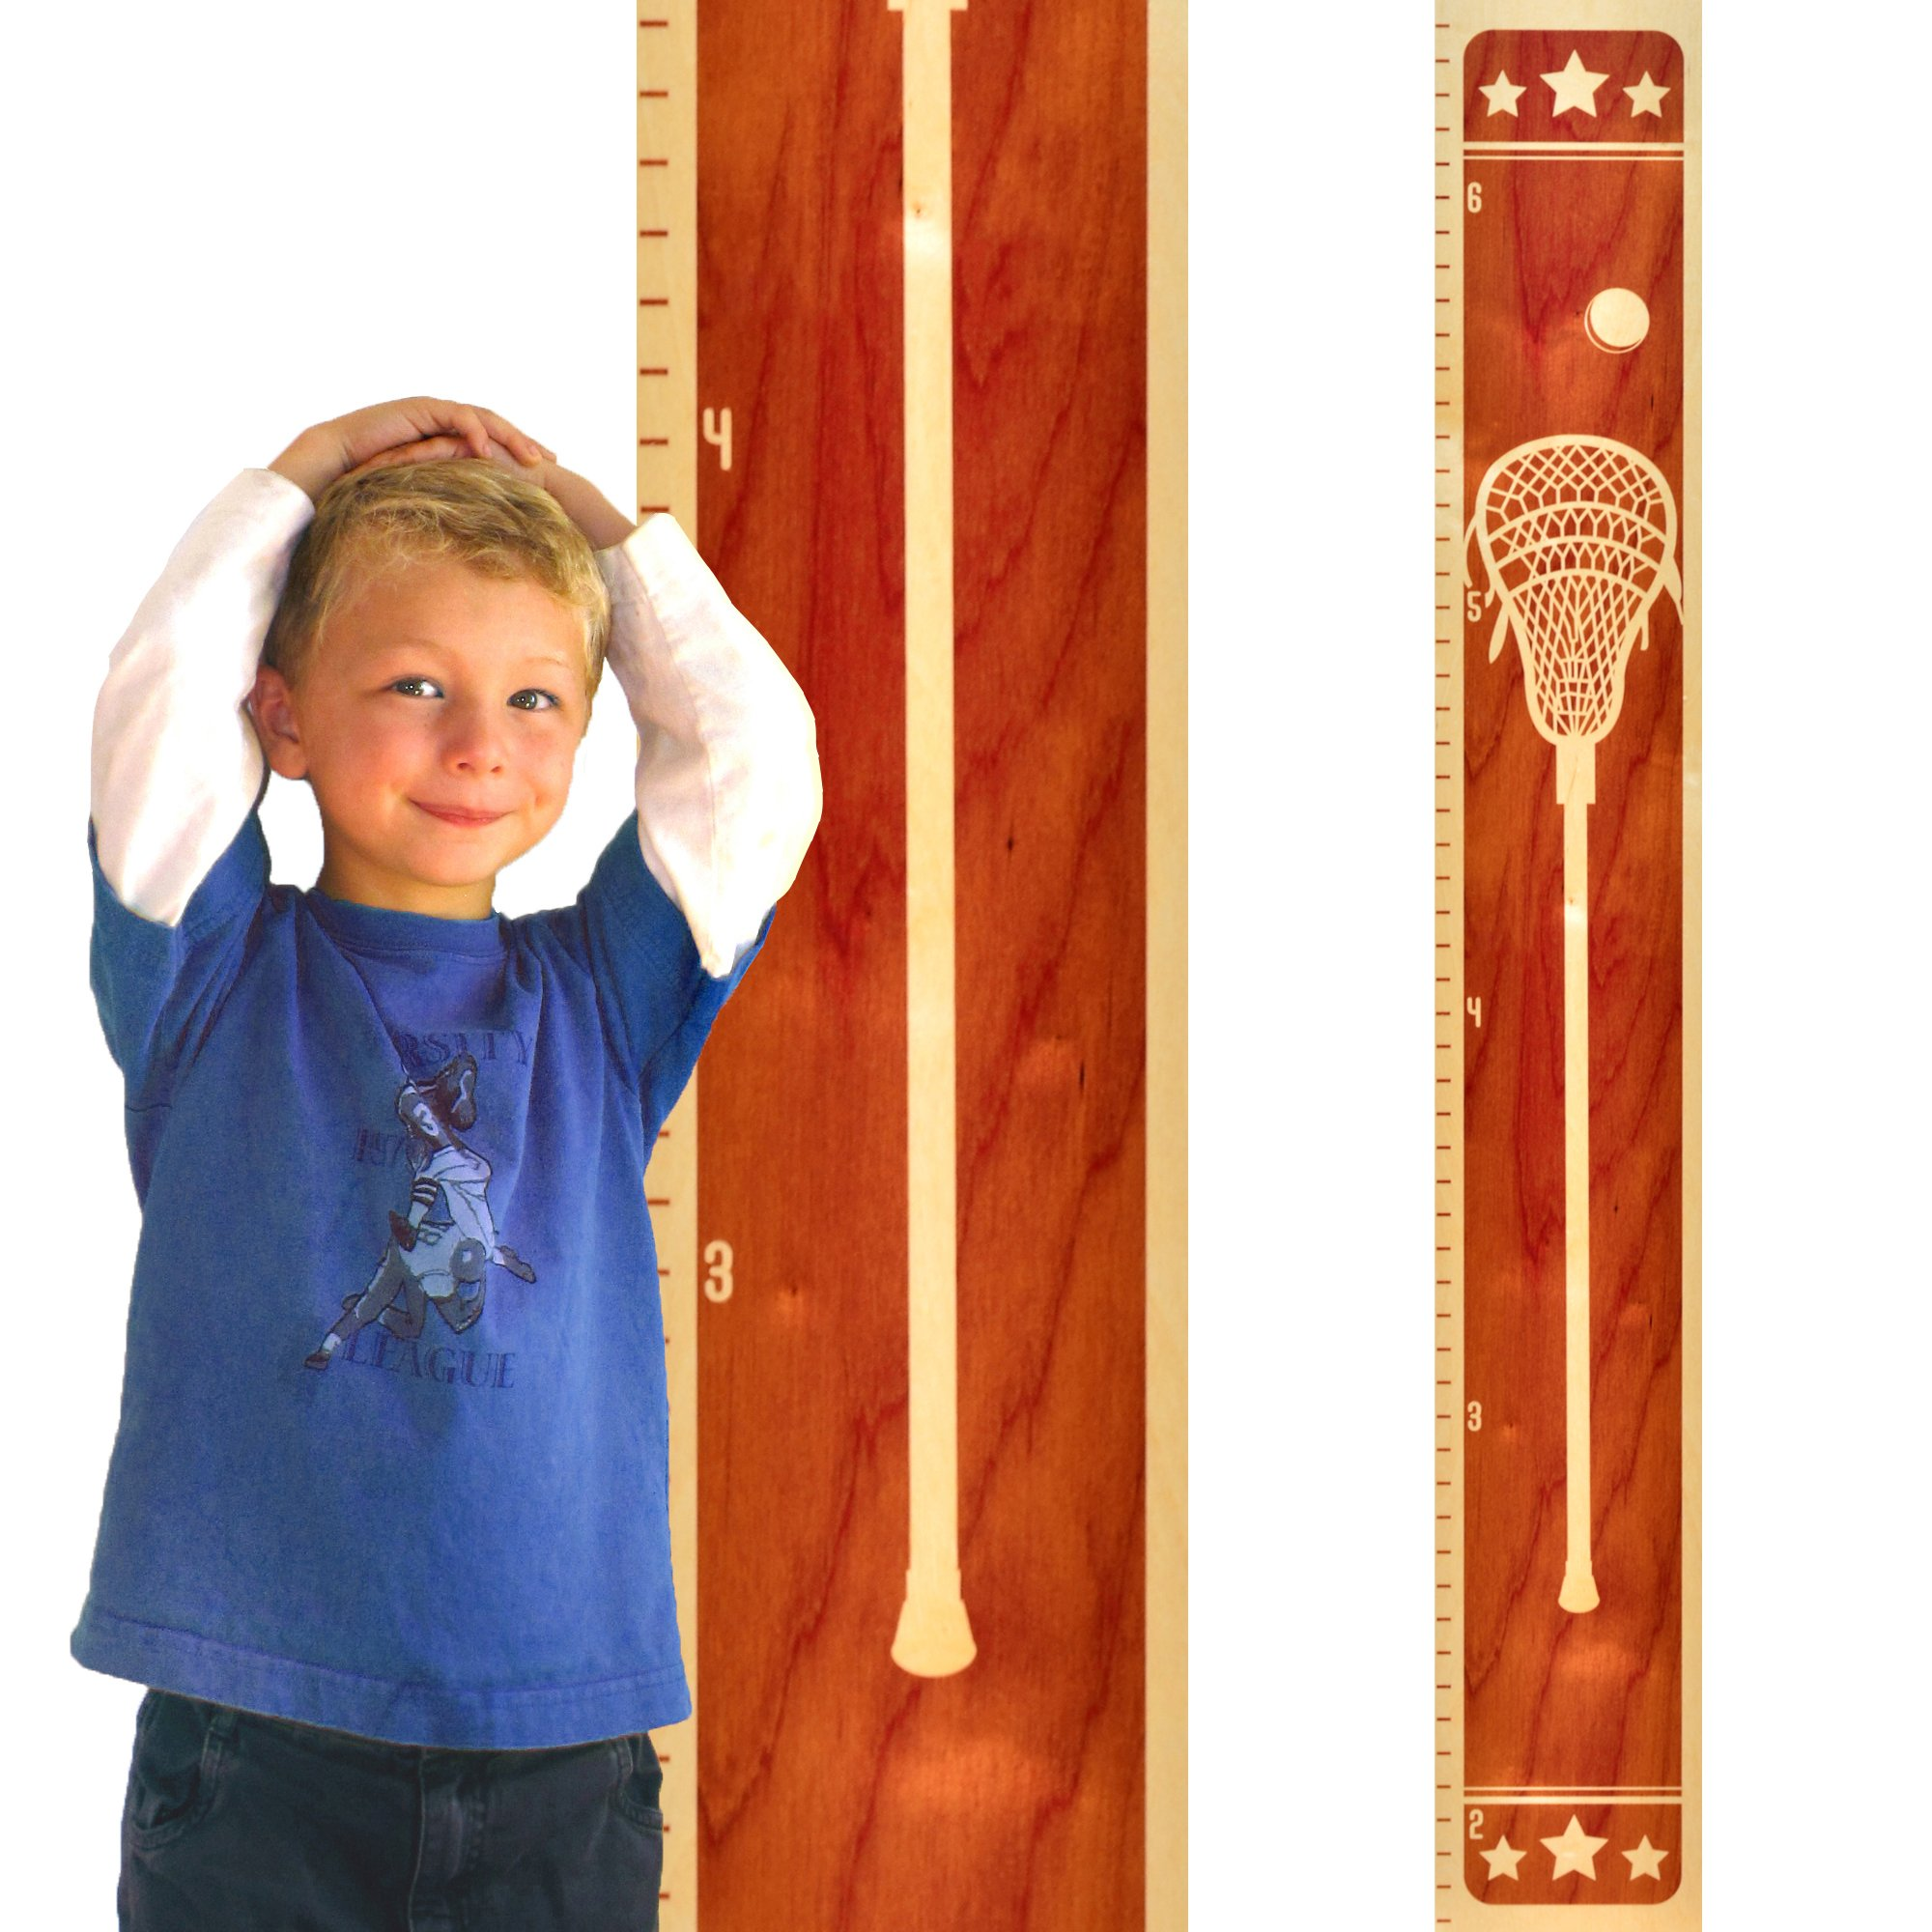 Buy growth chart art wooden height chart sports growth chart growth chart art wooden height chart sports growth chart for kids boys geenschuldenfo Choice Image